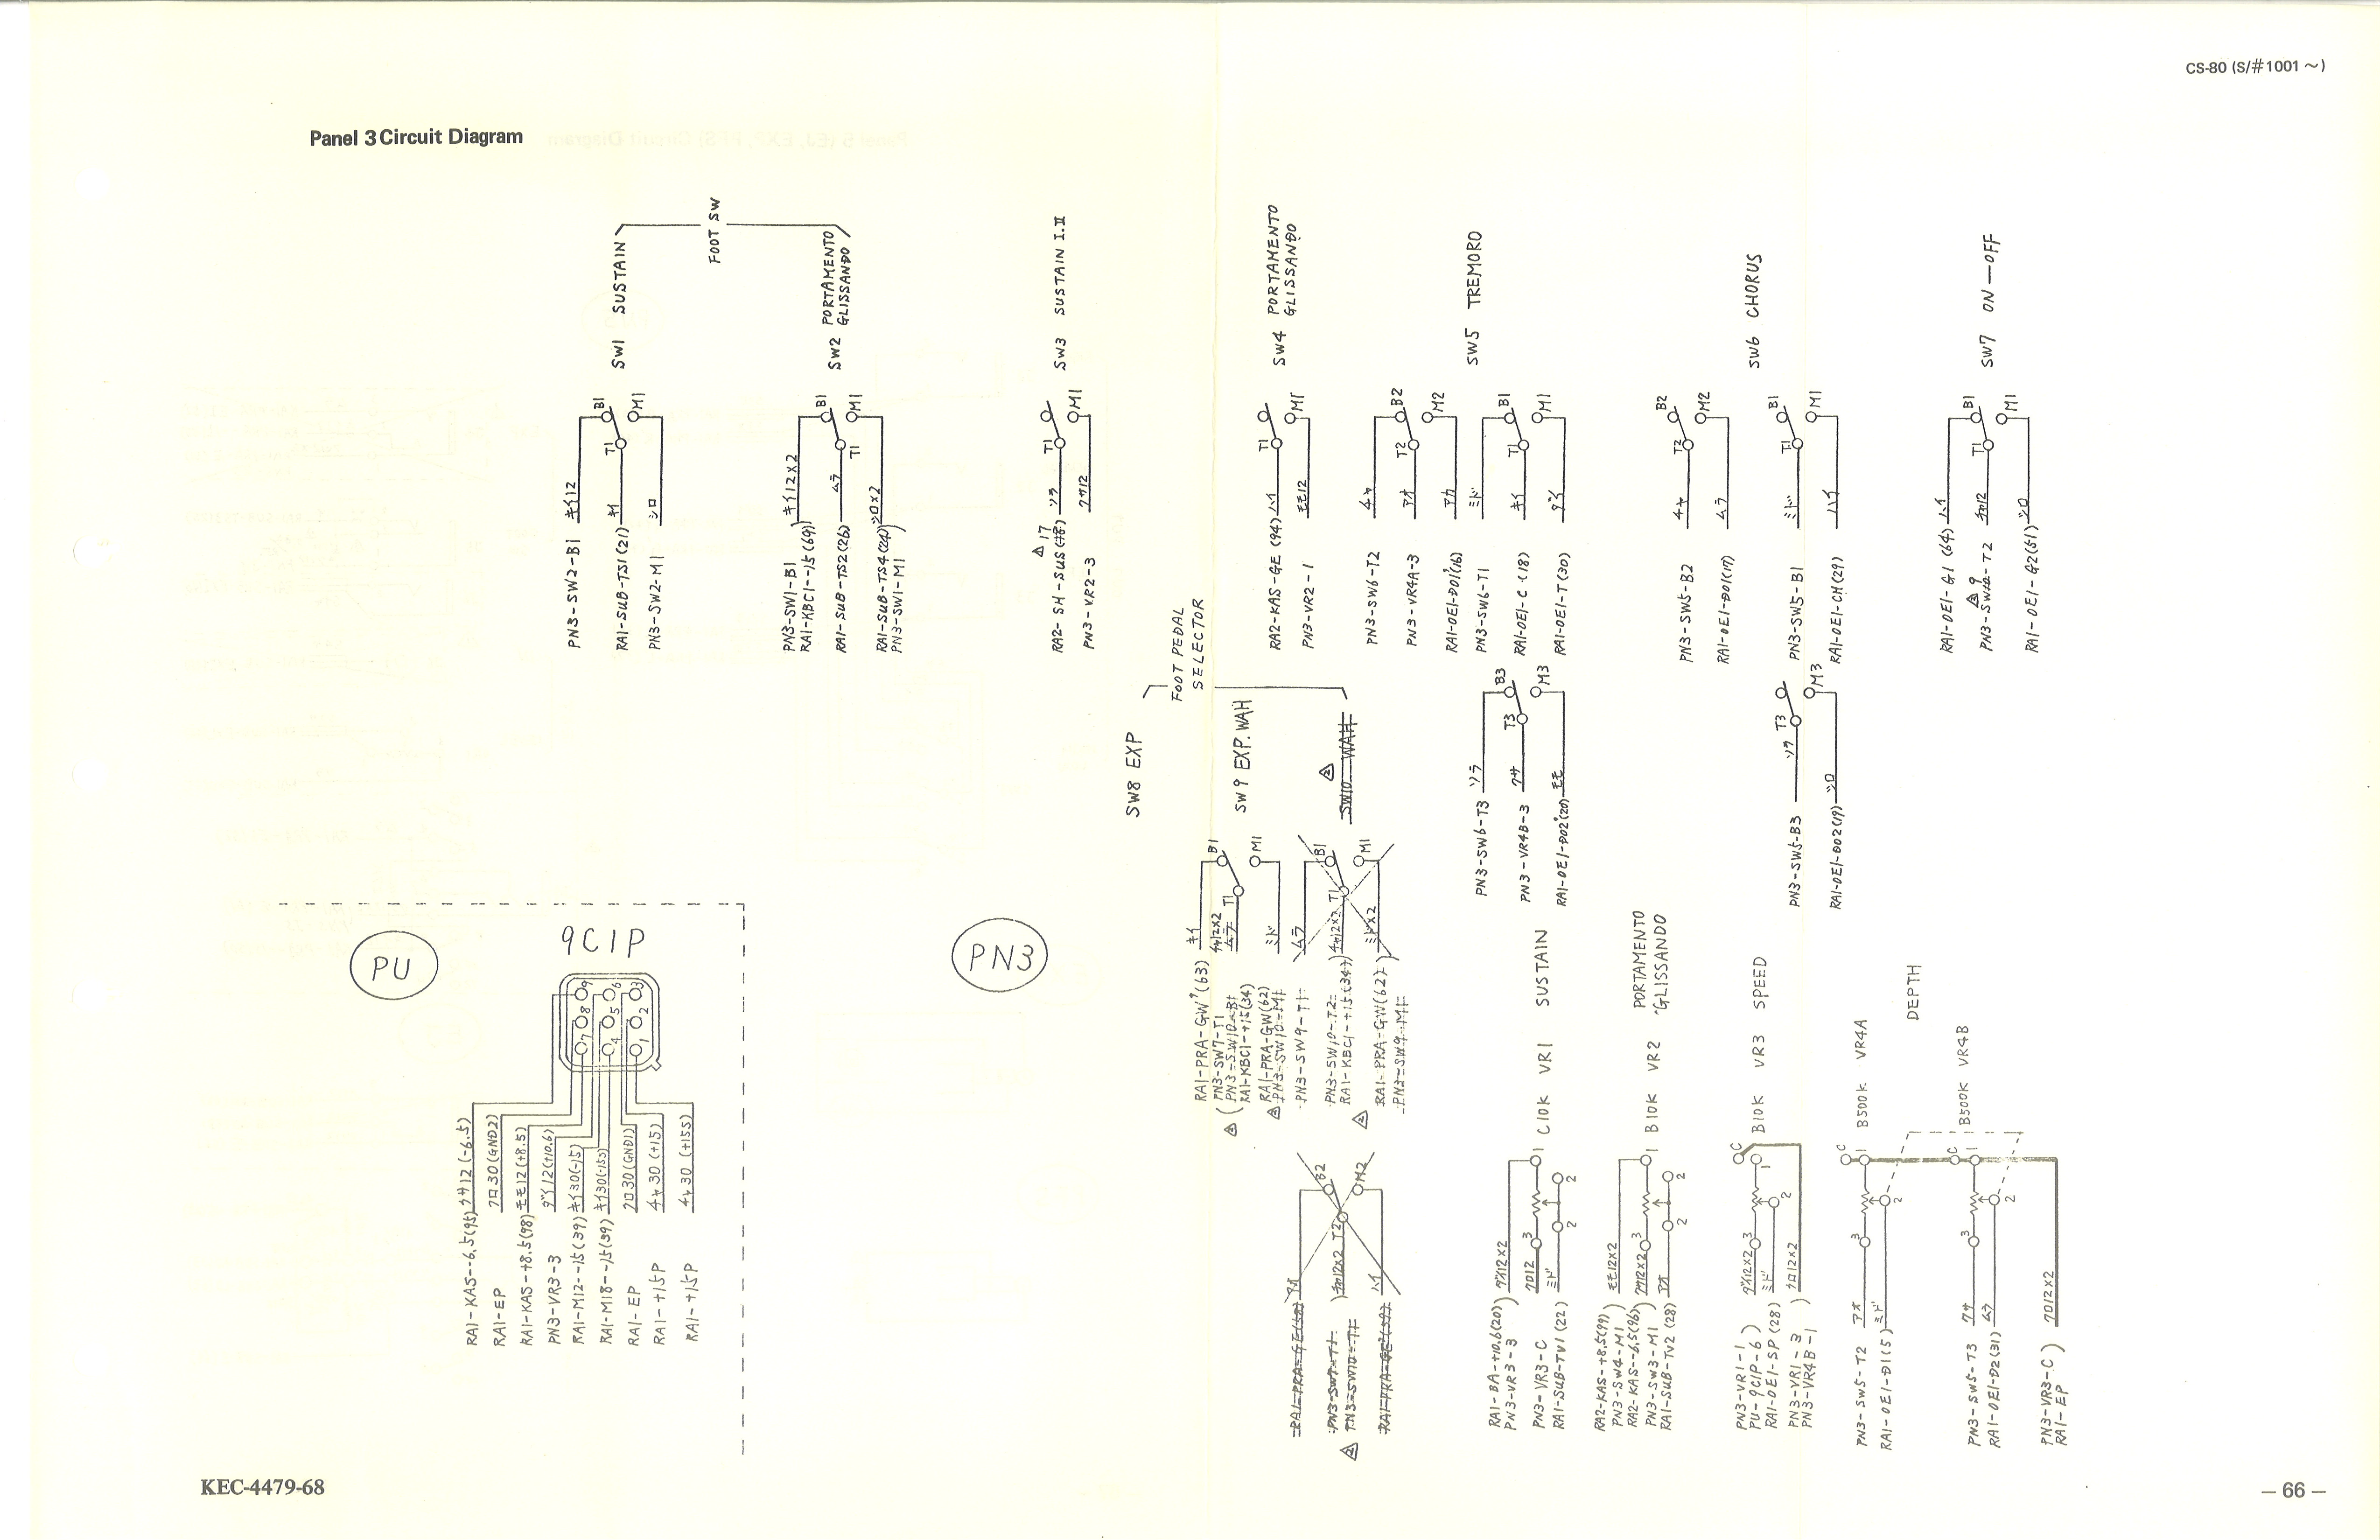 Yamaha CS-80 Service Manual on sincgars radio configurations diagrams, switch diagrams, honda motorcycle repair diagrams, pinout diagrams, troubleshooting diagrams, gmc fuse box diagrams, smart car diagrams, friendship bracelet diagrams, hvac diagrams, motor diagrams, battery diagrams, series and parallel circuits diagrams, electrical diagrams, lighting diagrams, led circuit diagrams, internet of things diagrams, electronic circuit diagrams, engine diagrams, transformer diagrams,